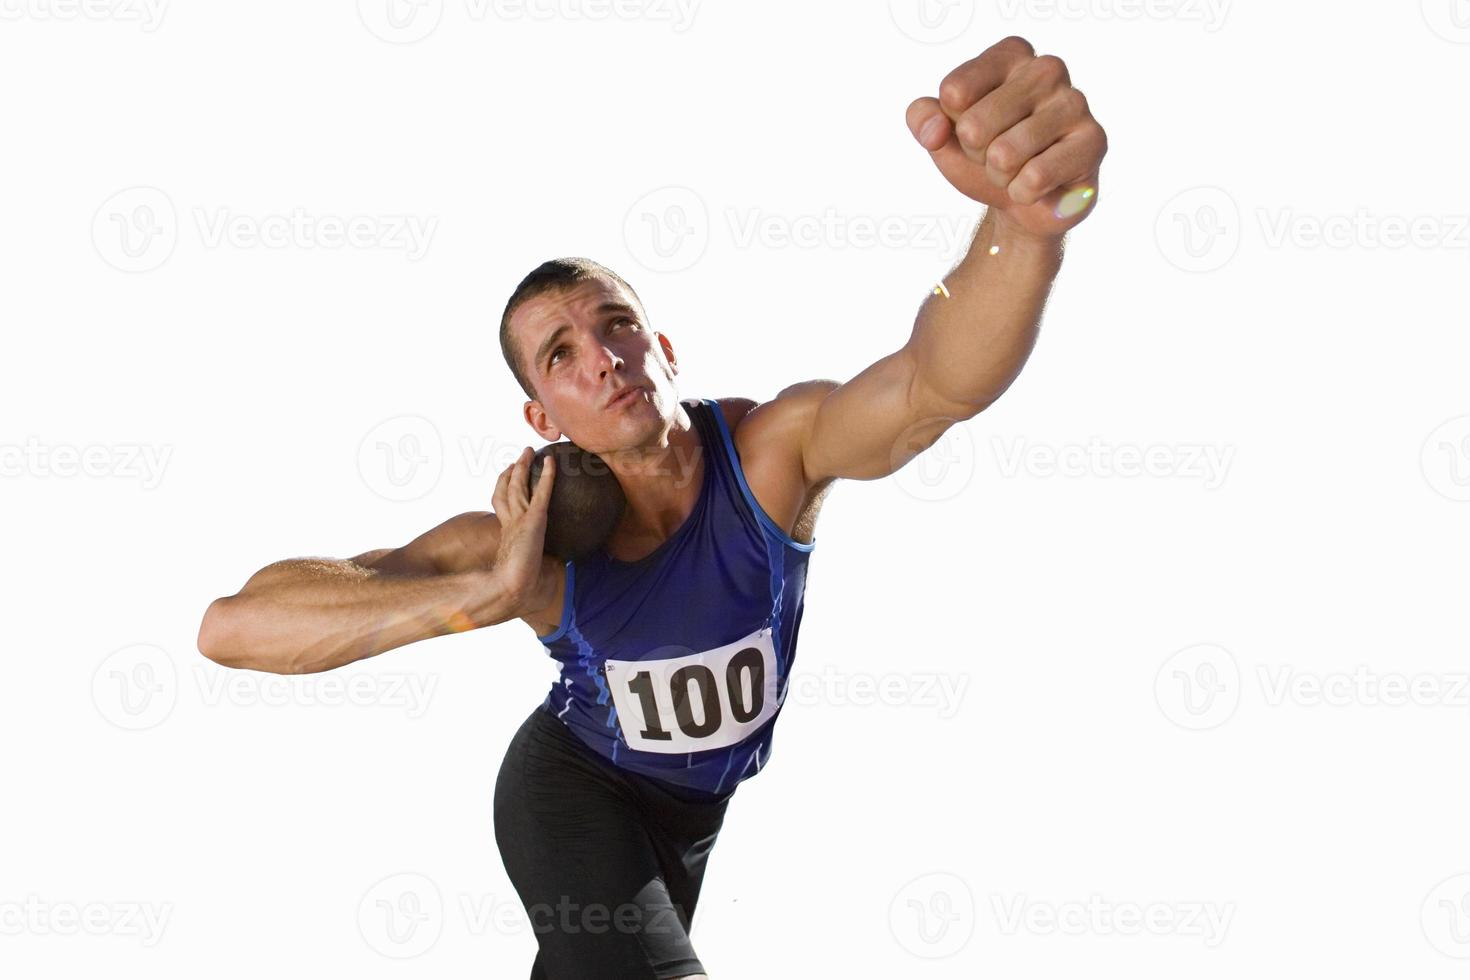 shotput player holding shot about to throw, cut out photo